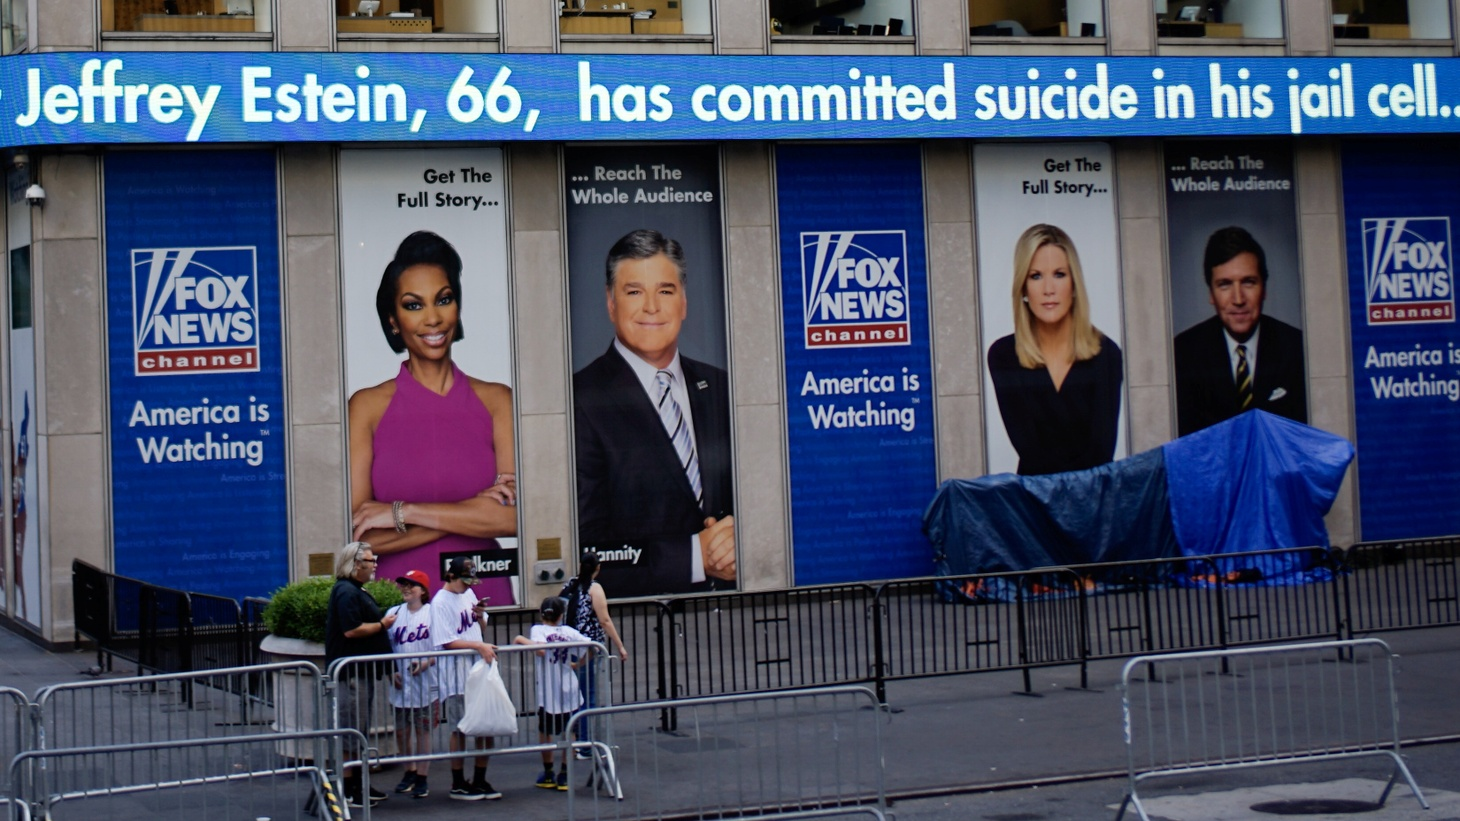 The Fox News electronic ticker at the News Corporation building shows the news about Jeffrey Epstein after he was found dead in his cell in the Manhattan Correctional Center of New York City, New York, U.S., August 10, 2019.